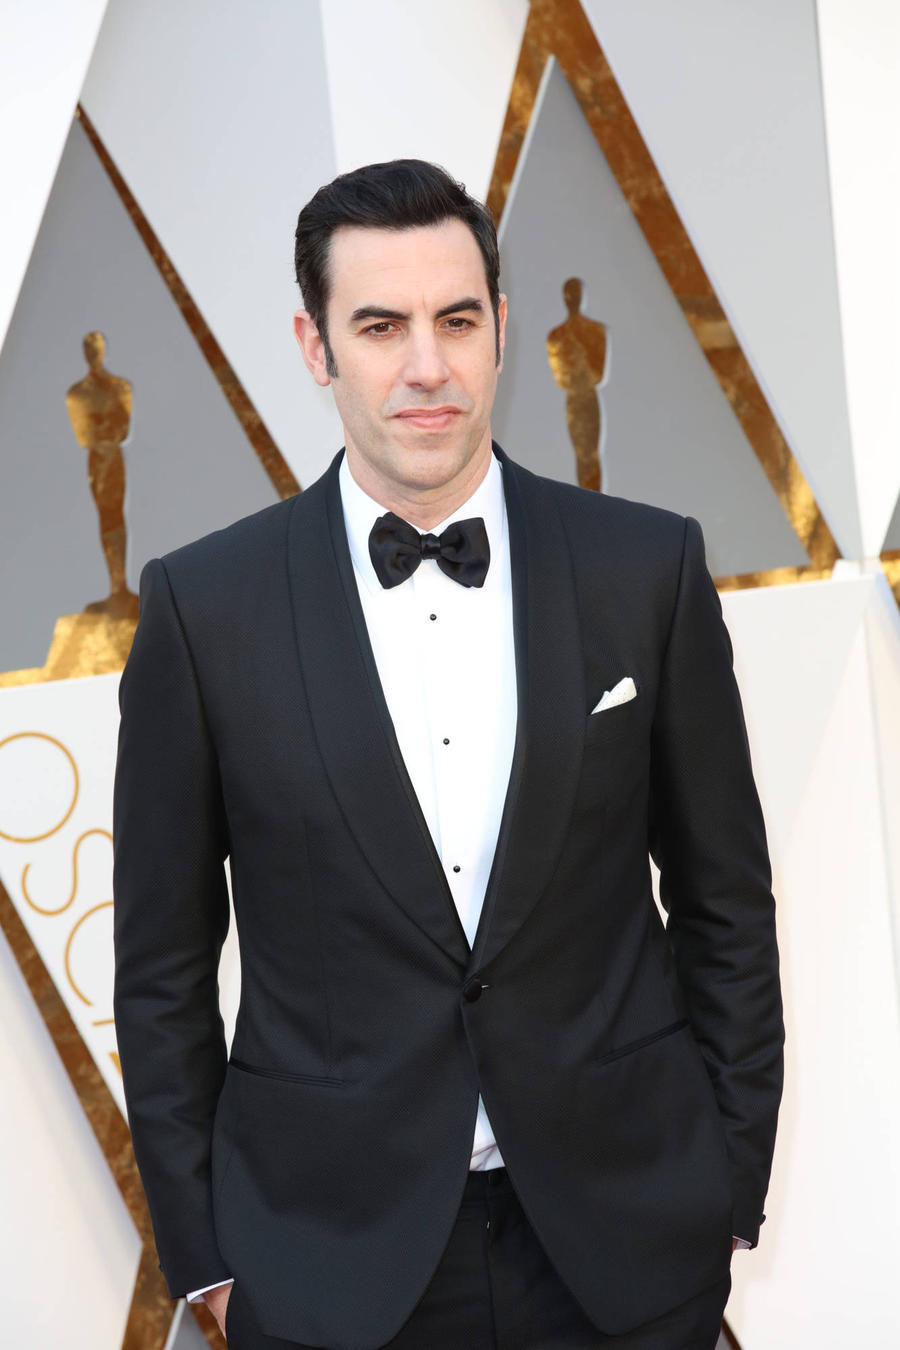 Sacha Baron Cohen Reveals Why He Quit Queen Biopic